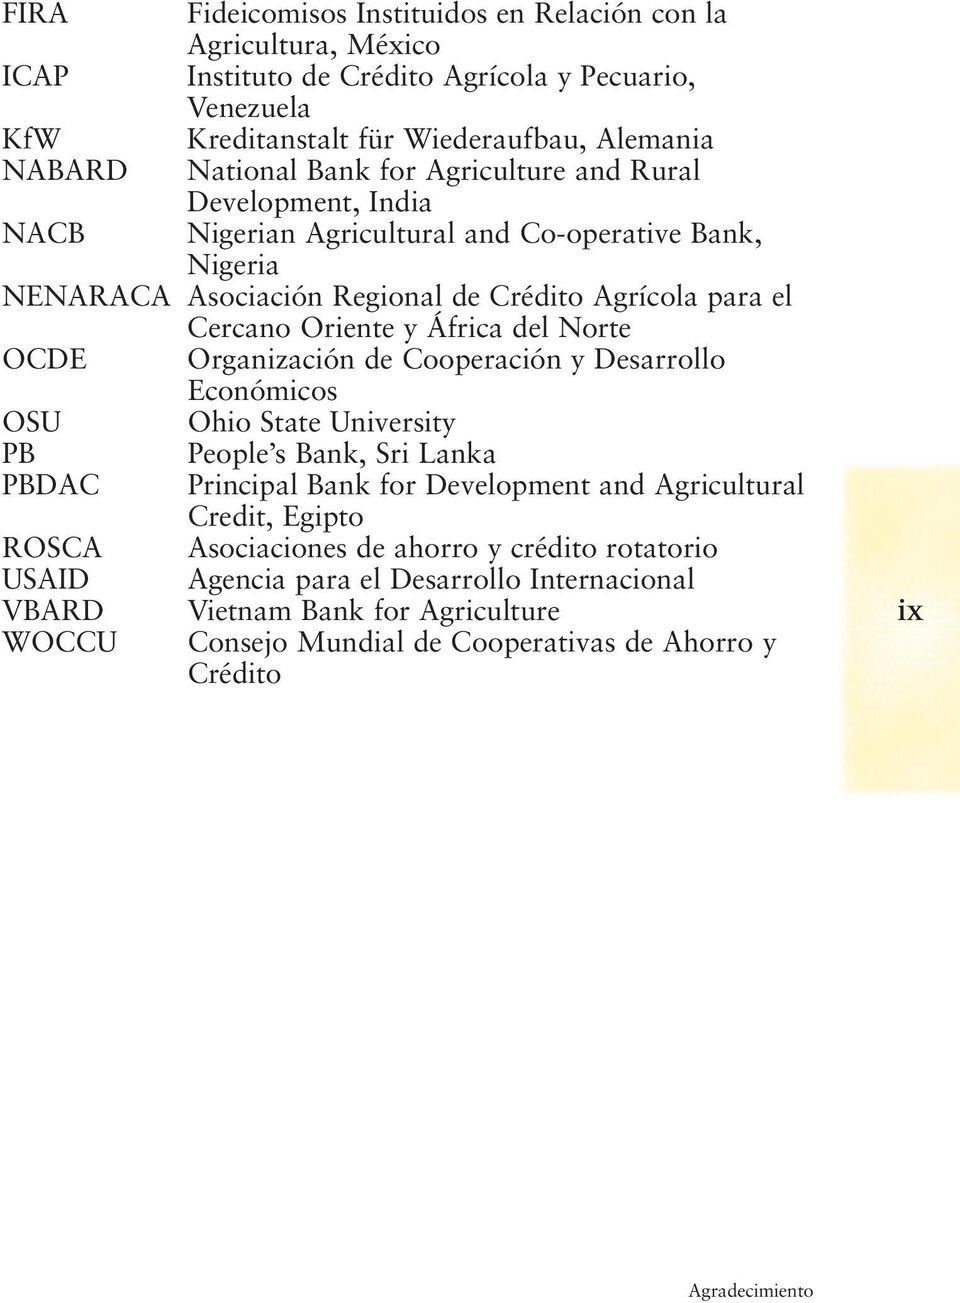 Norte OCDE Organización de Cooperación y Desarrollo Económicos OSU Ohio State University PB People s Bank, Sri Lanka PBDAC Principal Bank for Development and Agricultural Credit, Egipto ROSCA